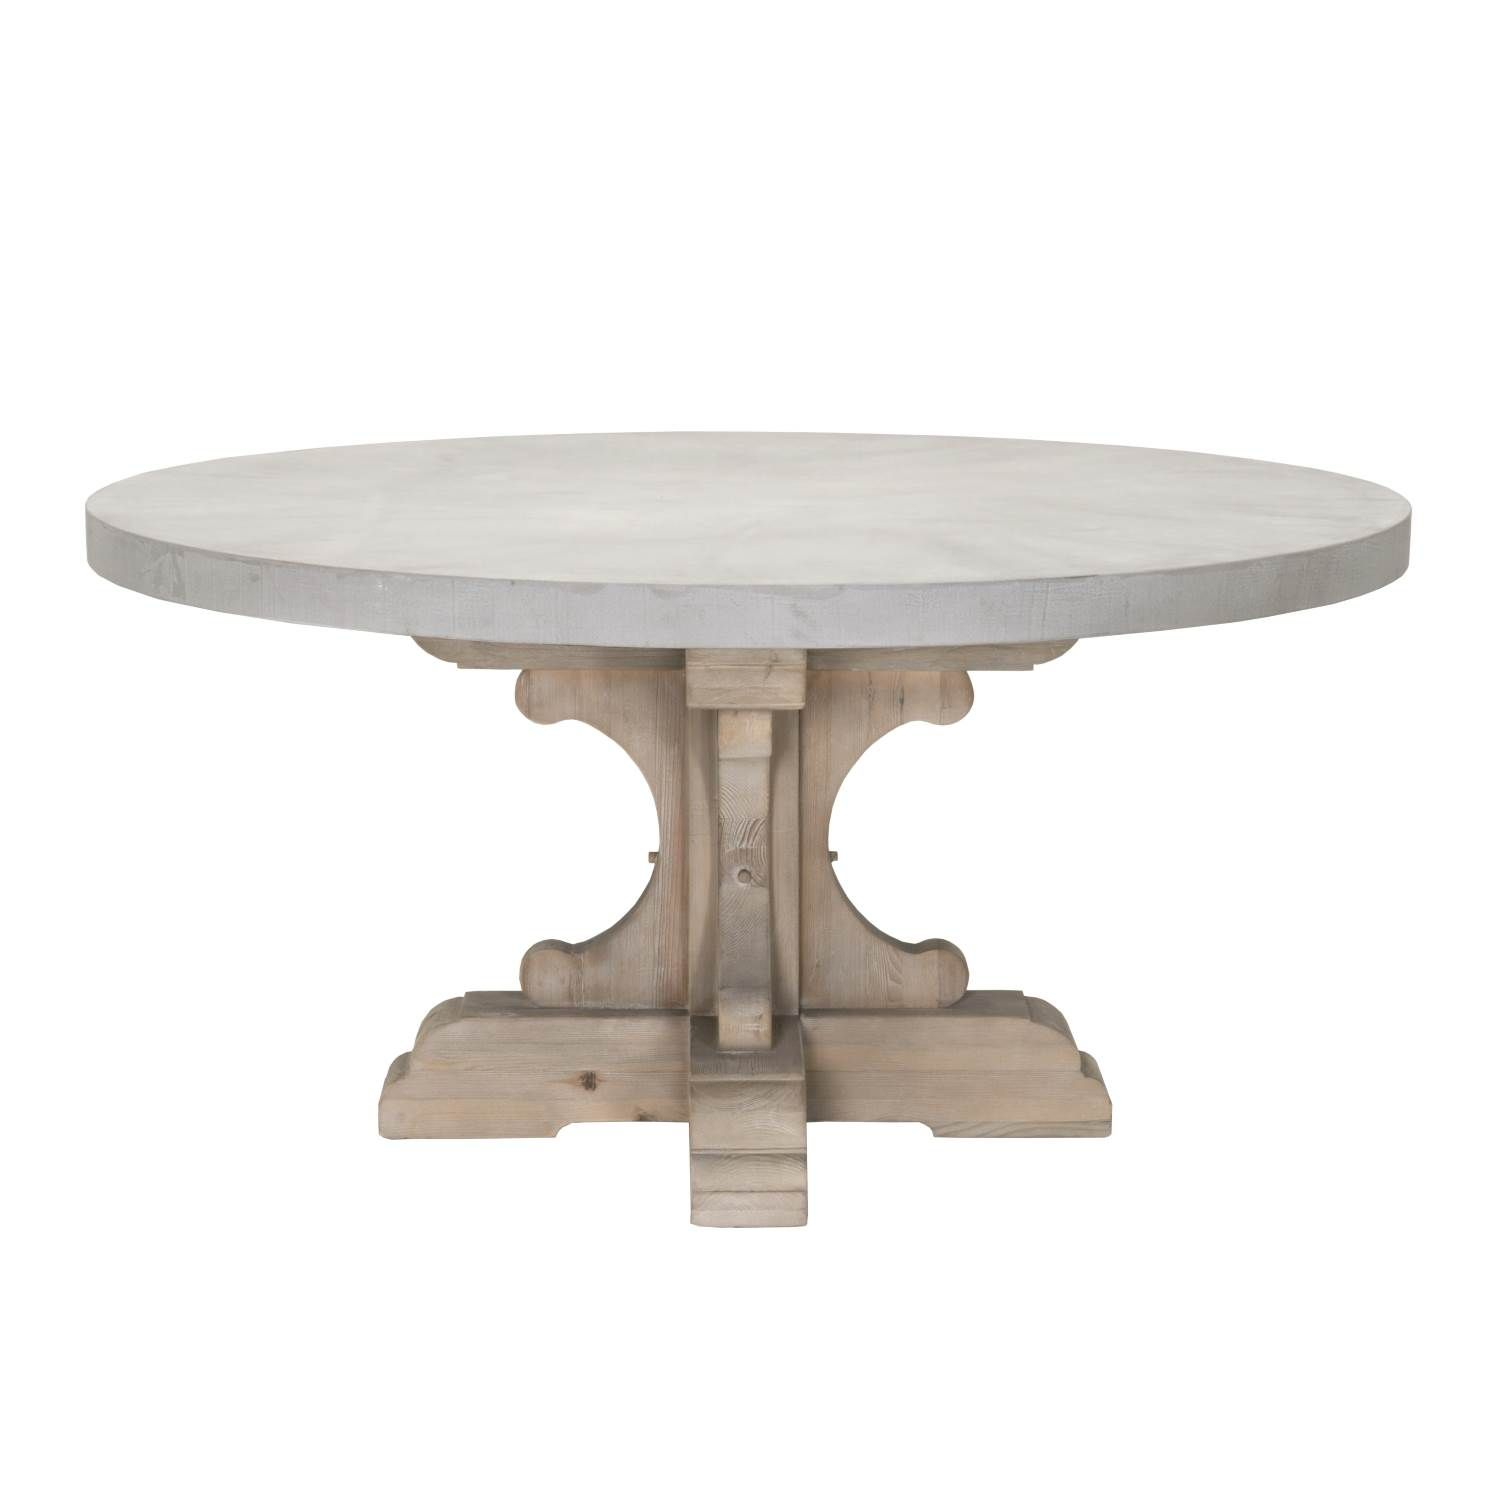 Bastille Round Dining Table Top Round Concrete Dining Table